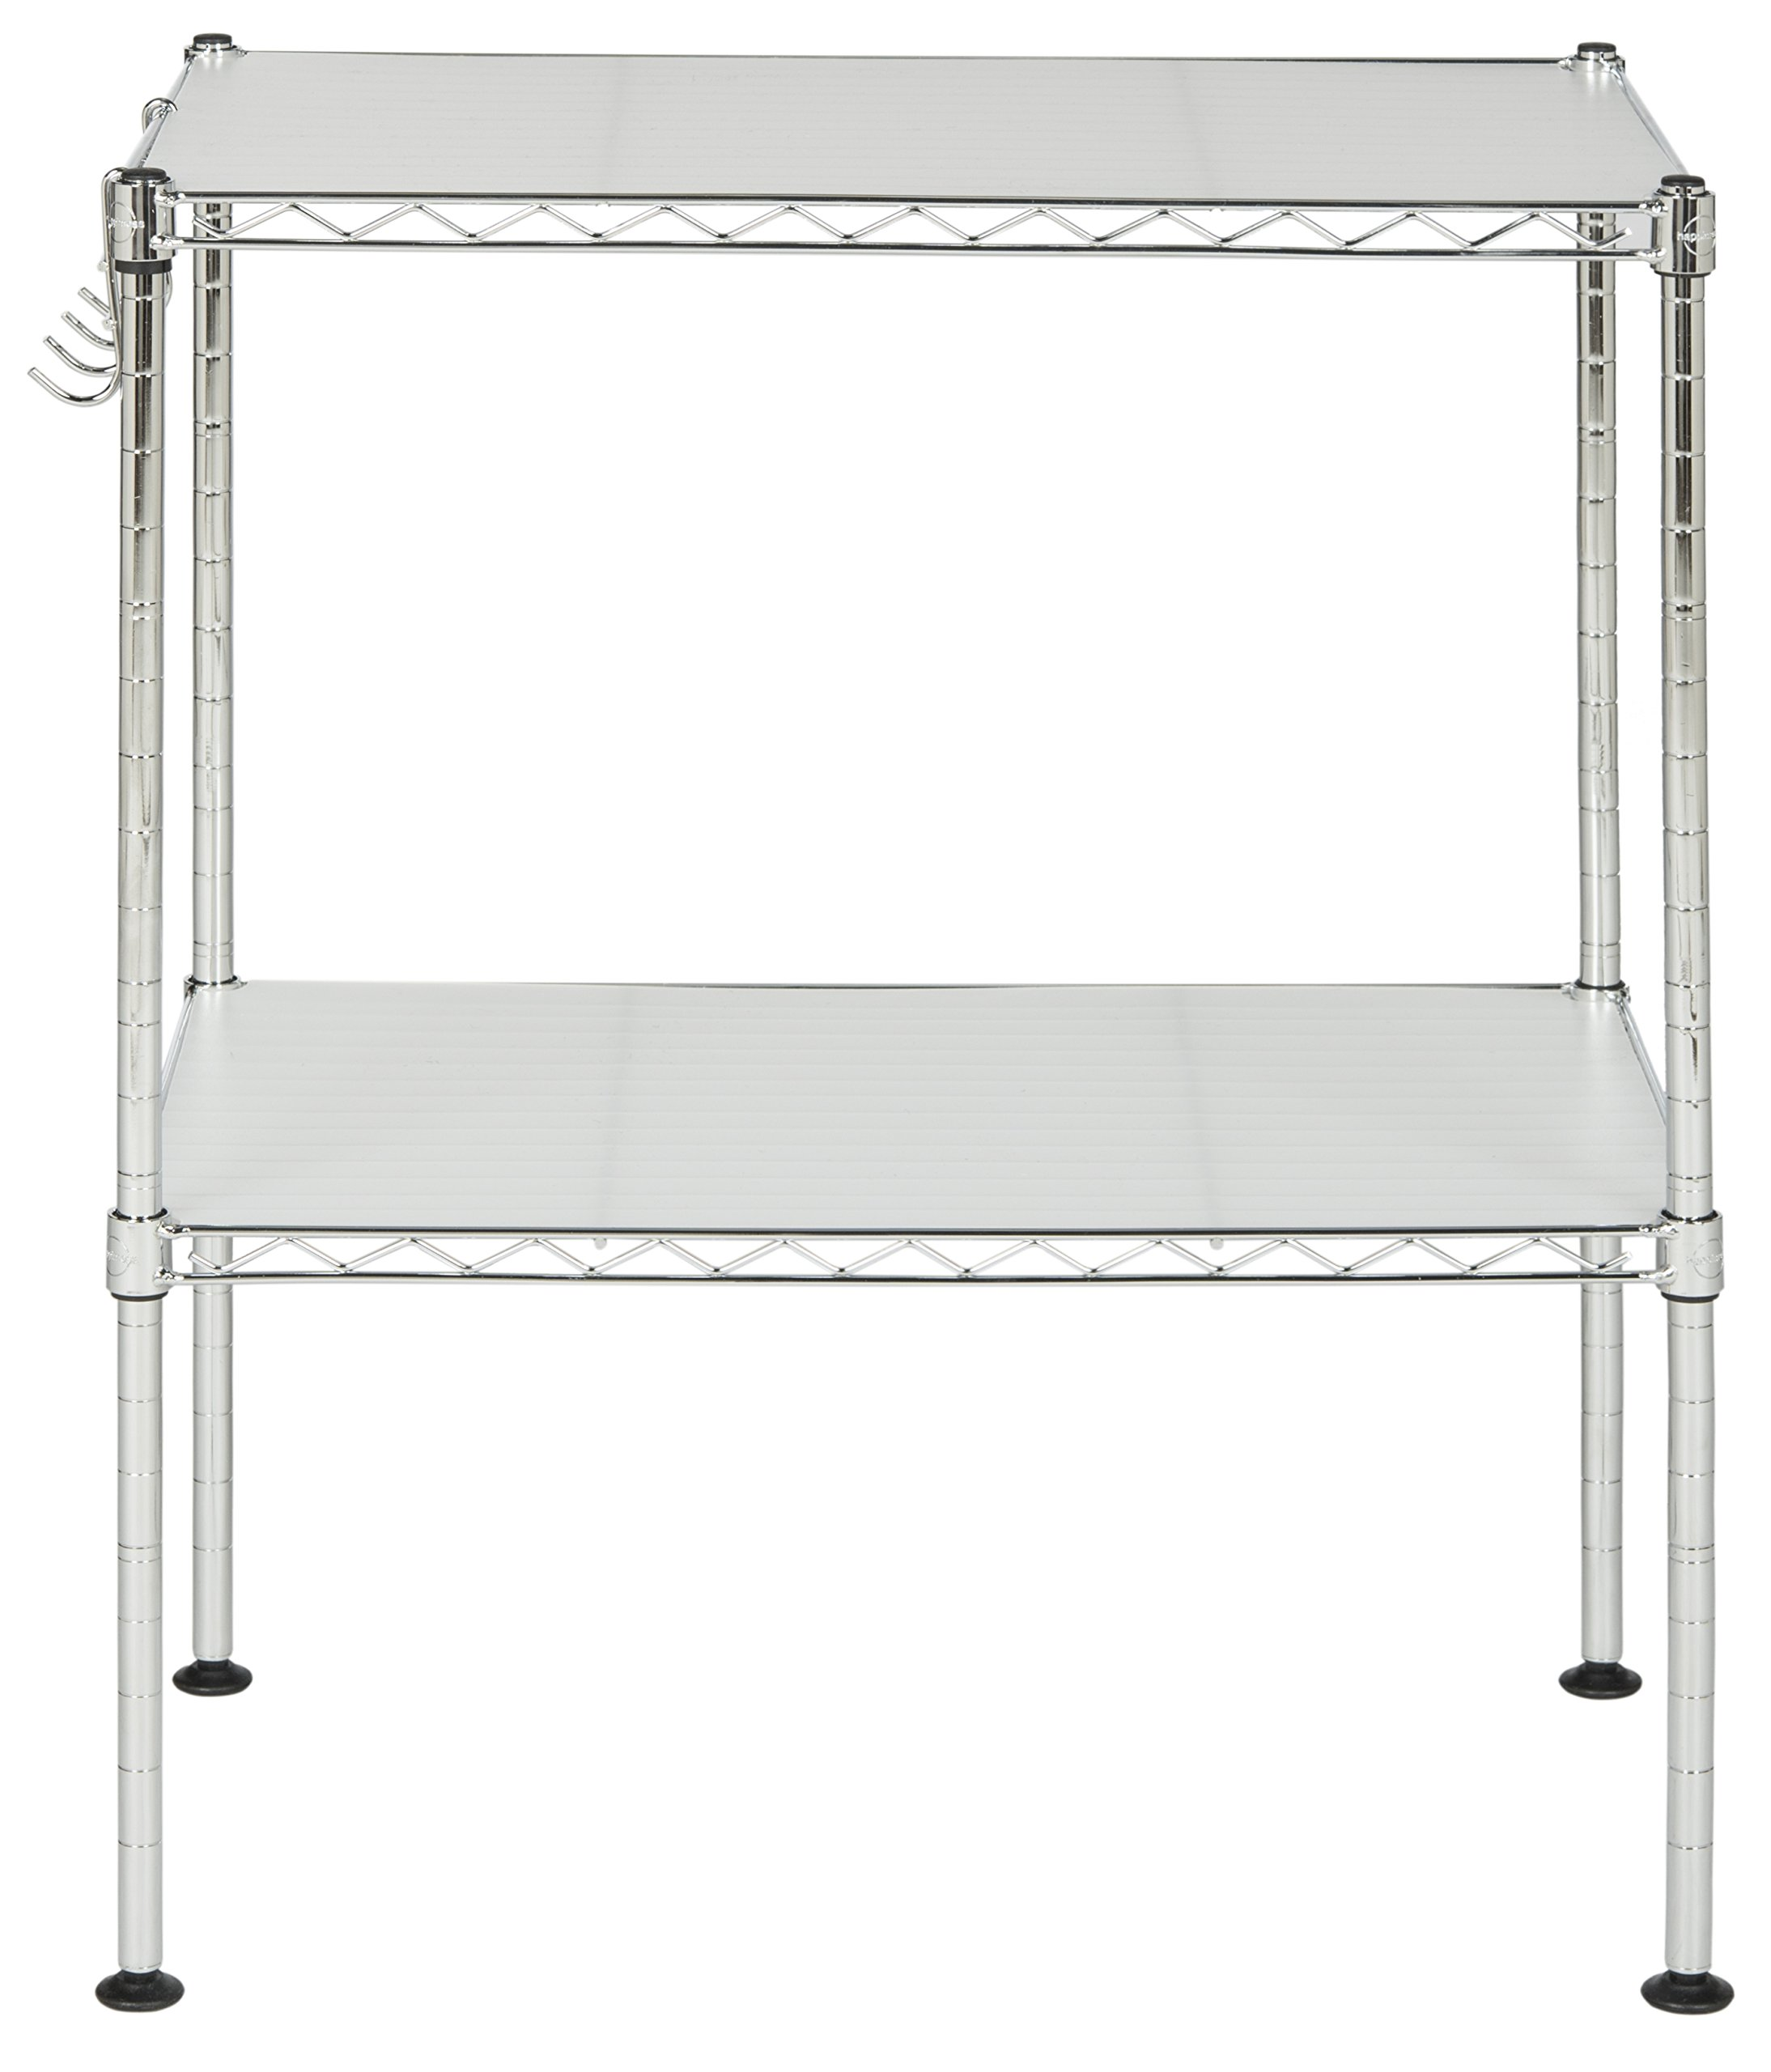 happimess HPM5013A Racking, 19.69 in. W x 11.81 in. D x 23.62 in. H, Silver by happimess (Image #6)